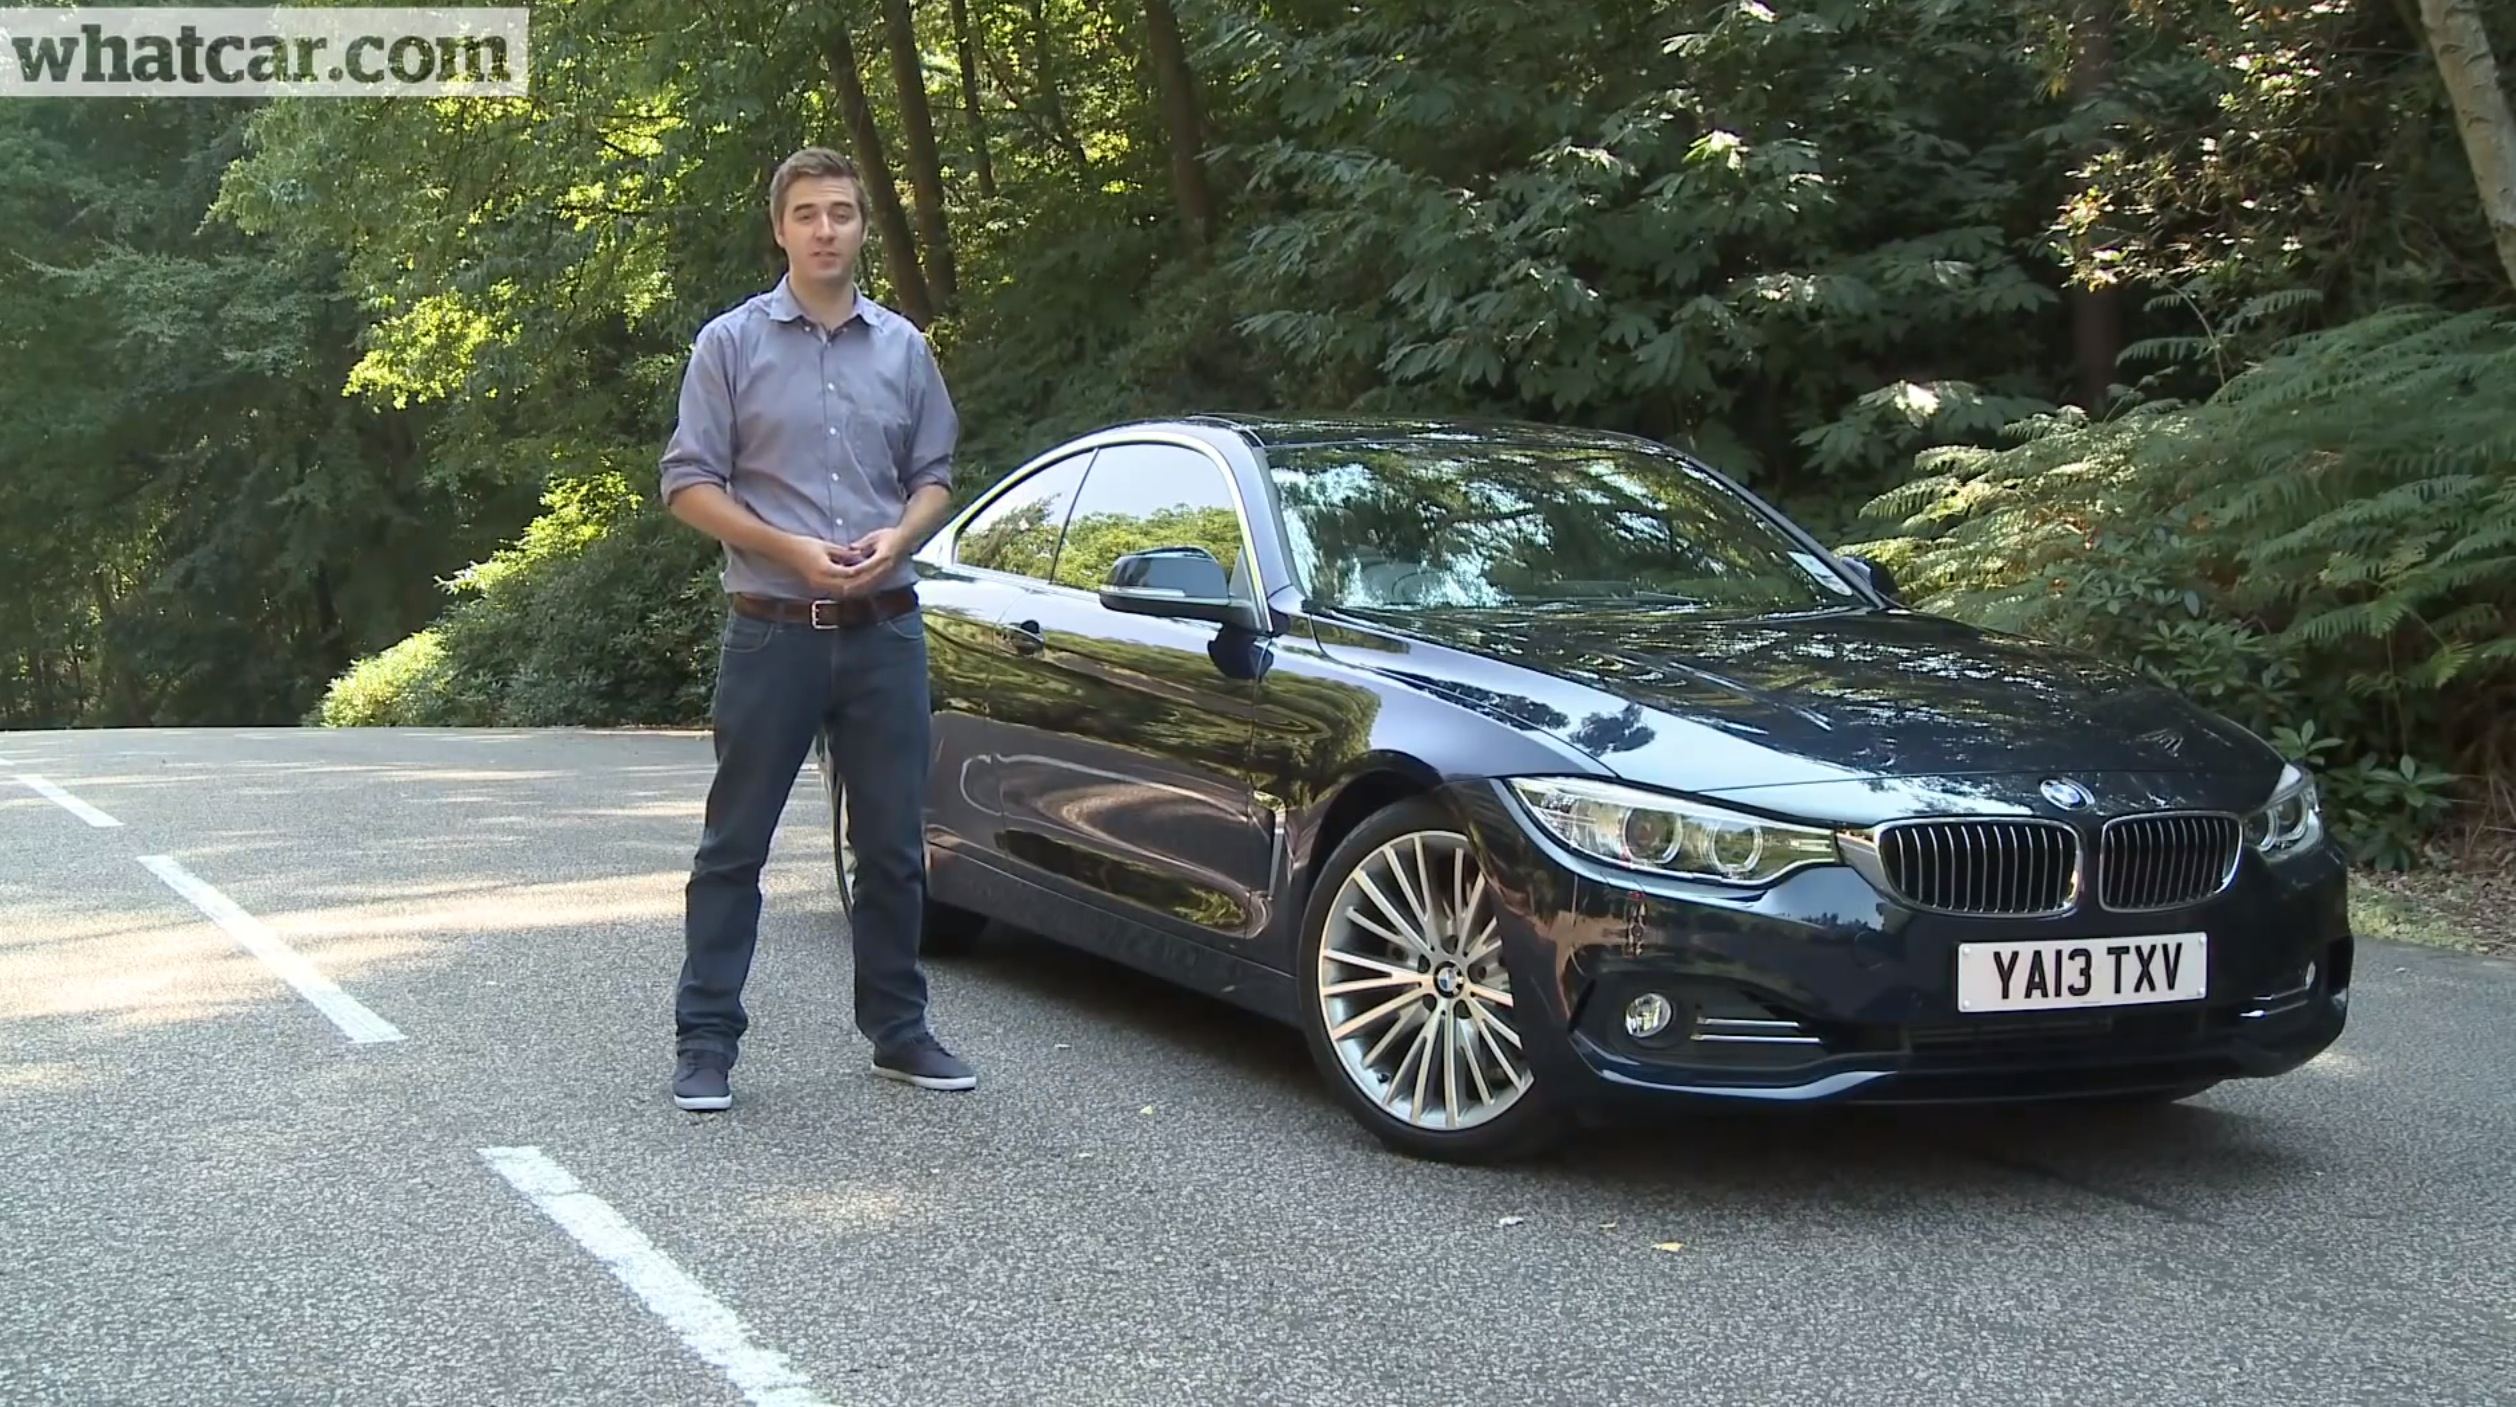 Bmw 4 Series Video Review Whatcar Com